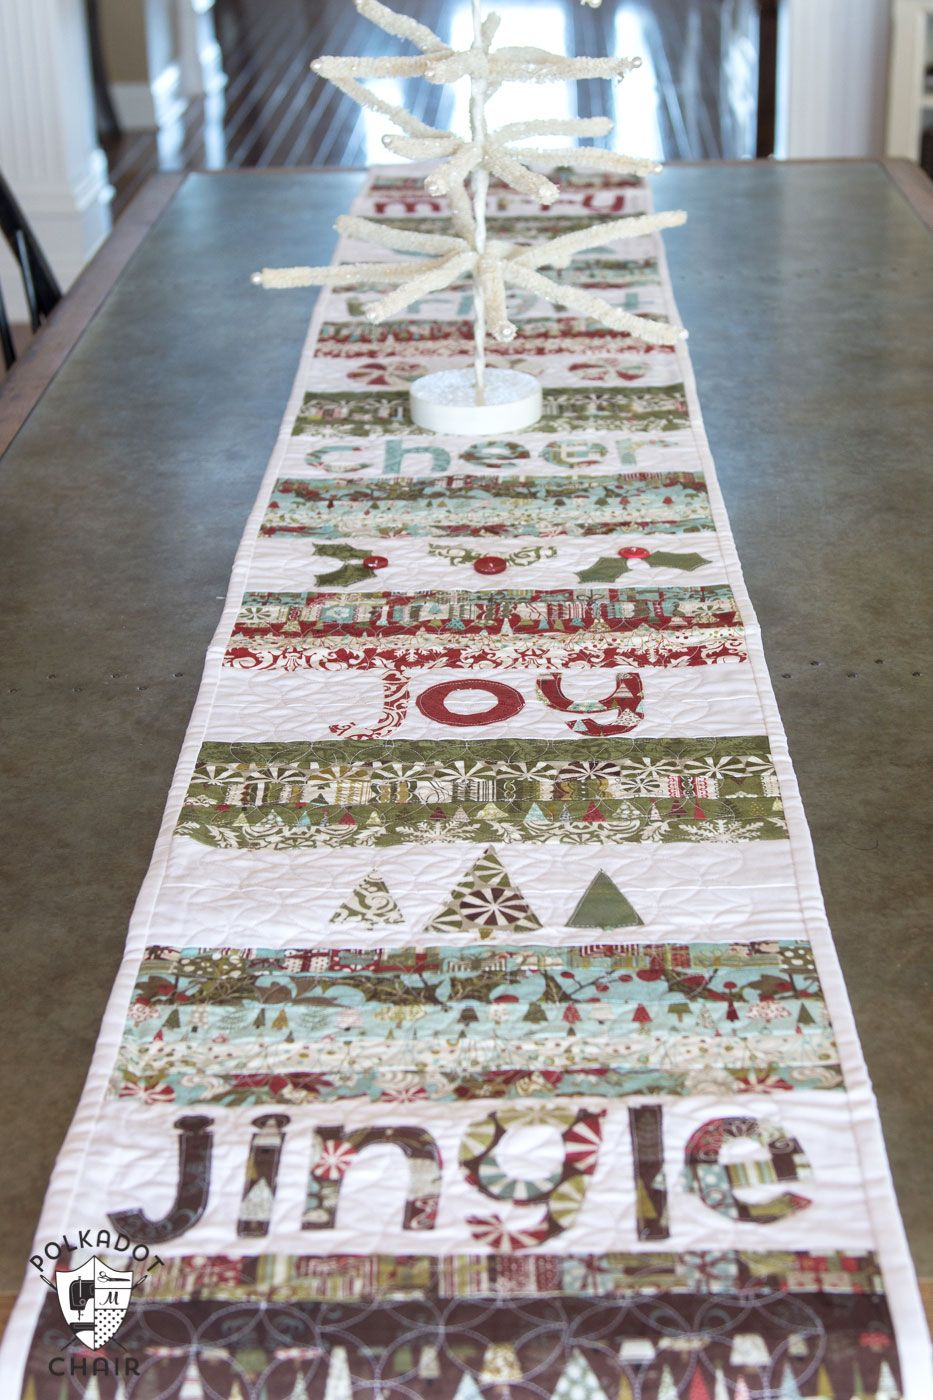 Merry & Cheer Quilted Christmas Table Runner Pattern | Sewing ...